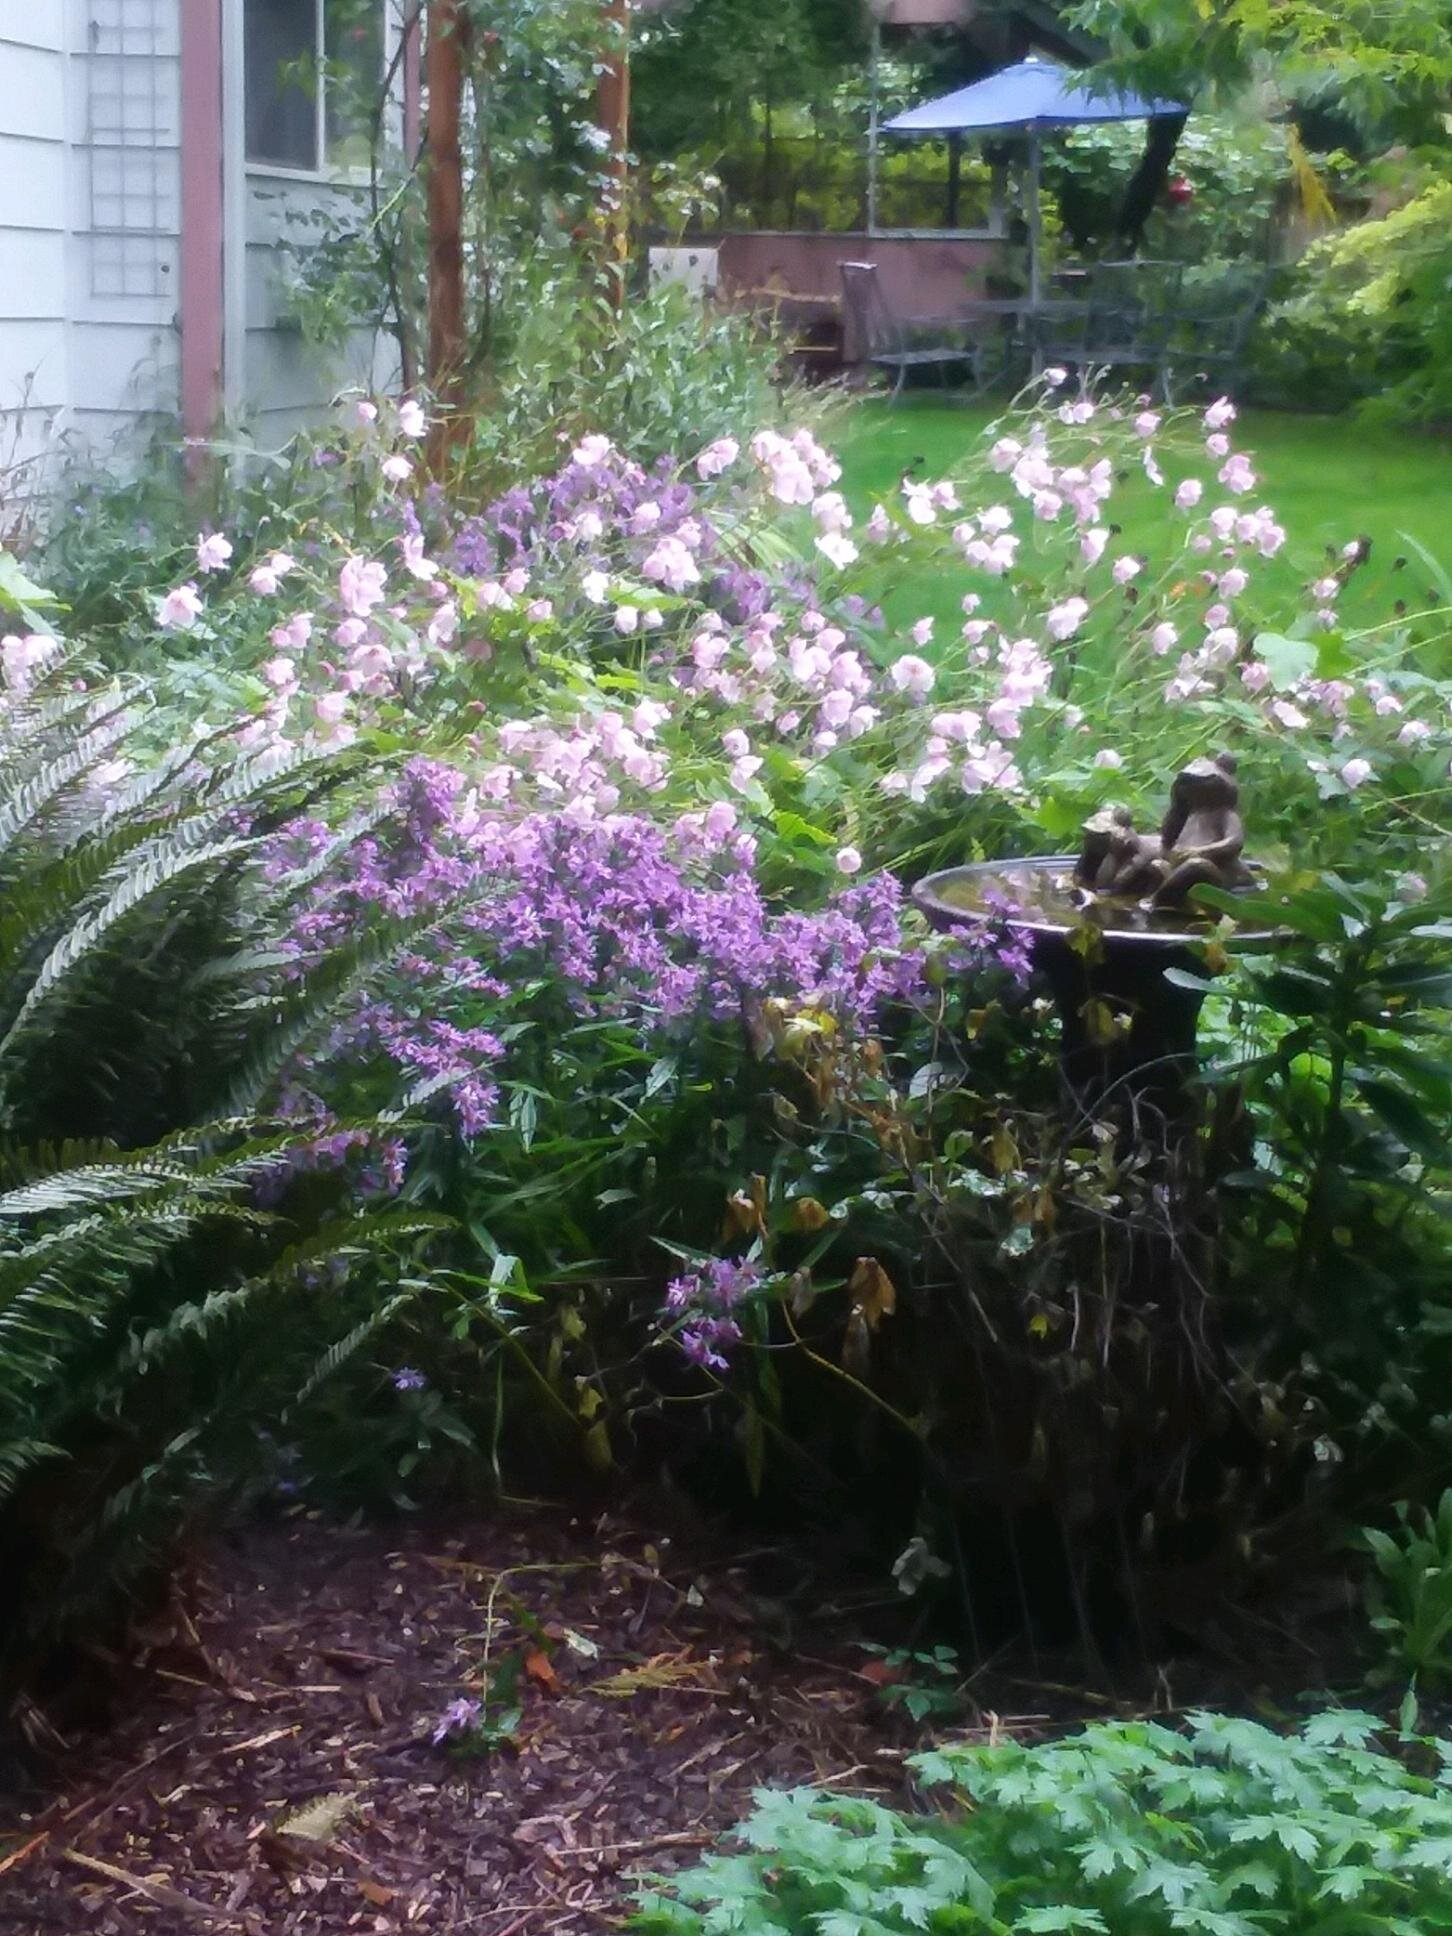 Purple Asters and Pink Anemones